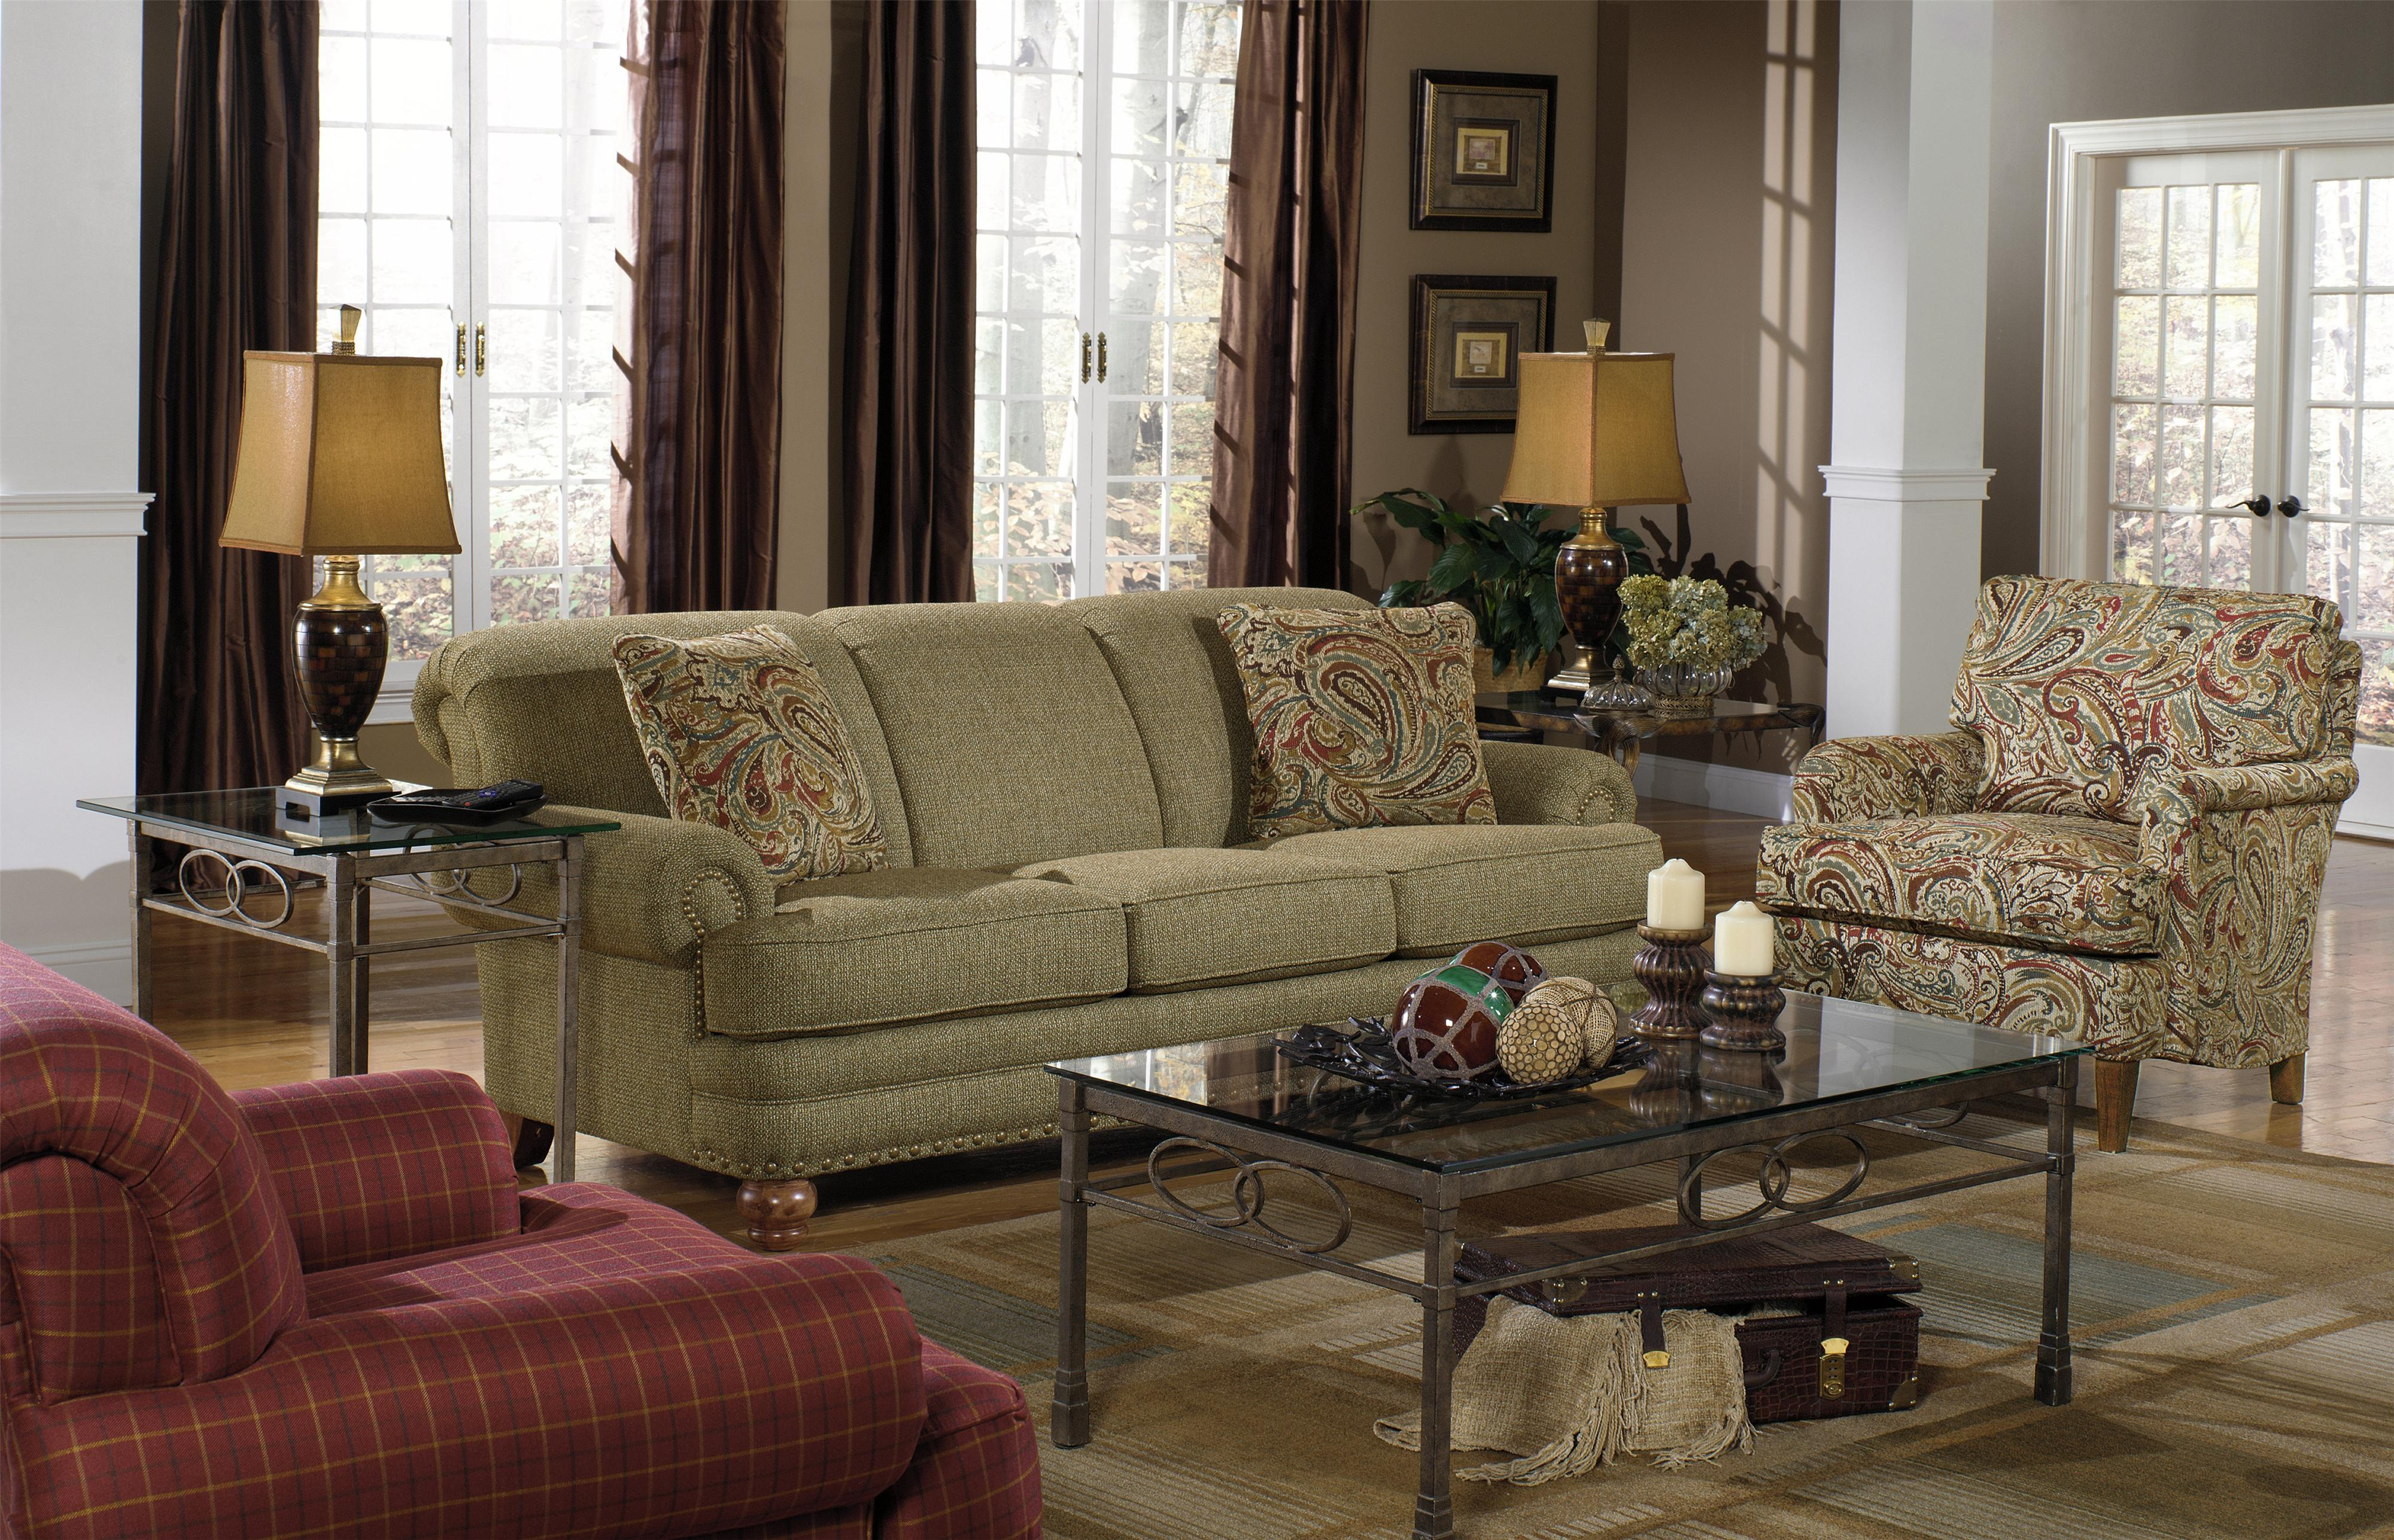 7281 Stationary Living Room Group by Craftmaster at Esprit Decor Home Furnishings